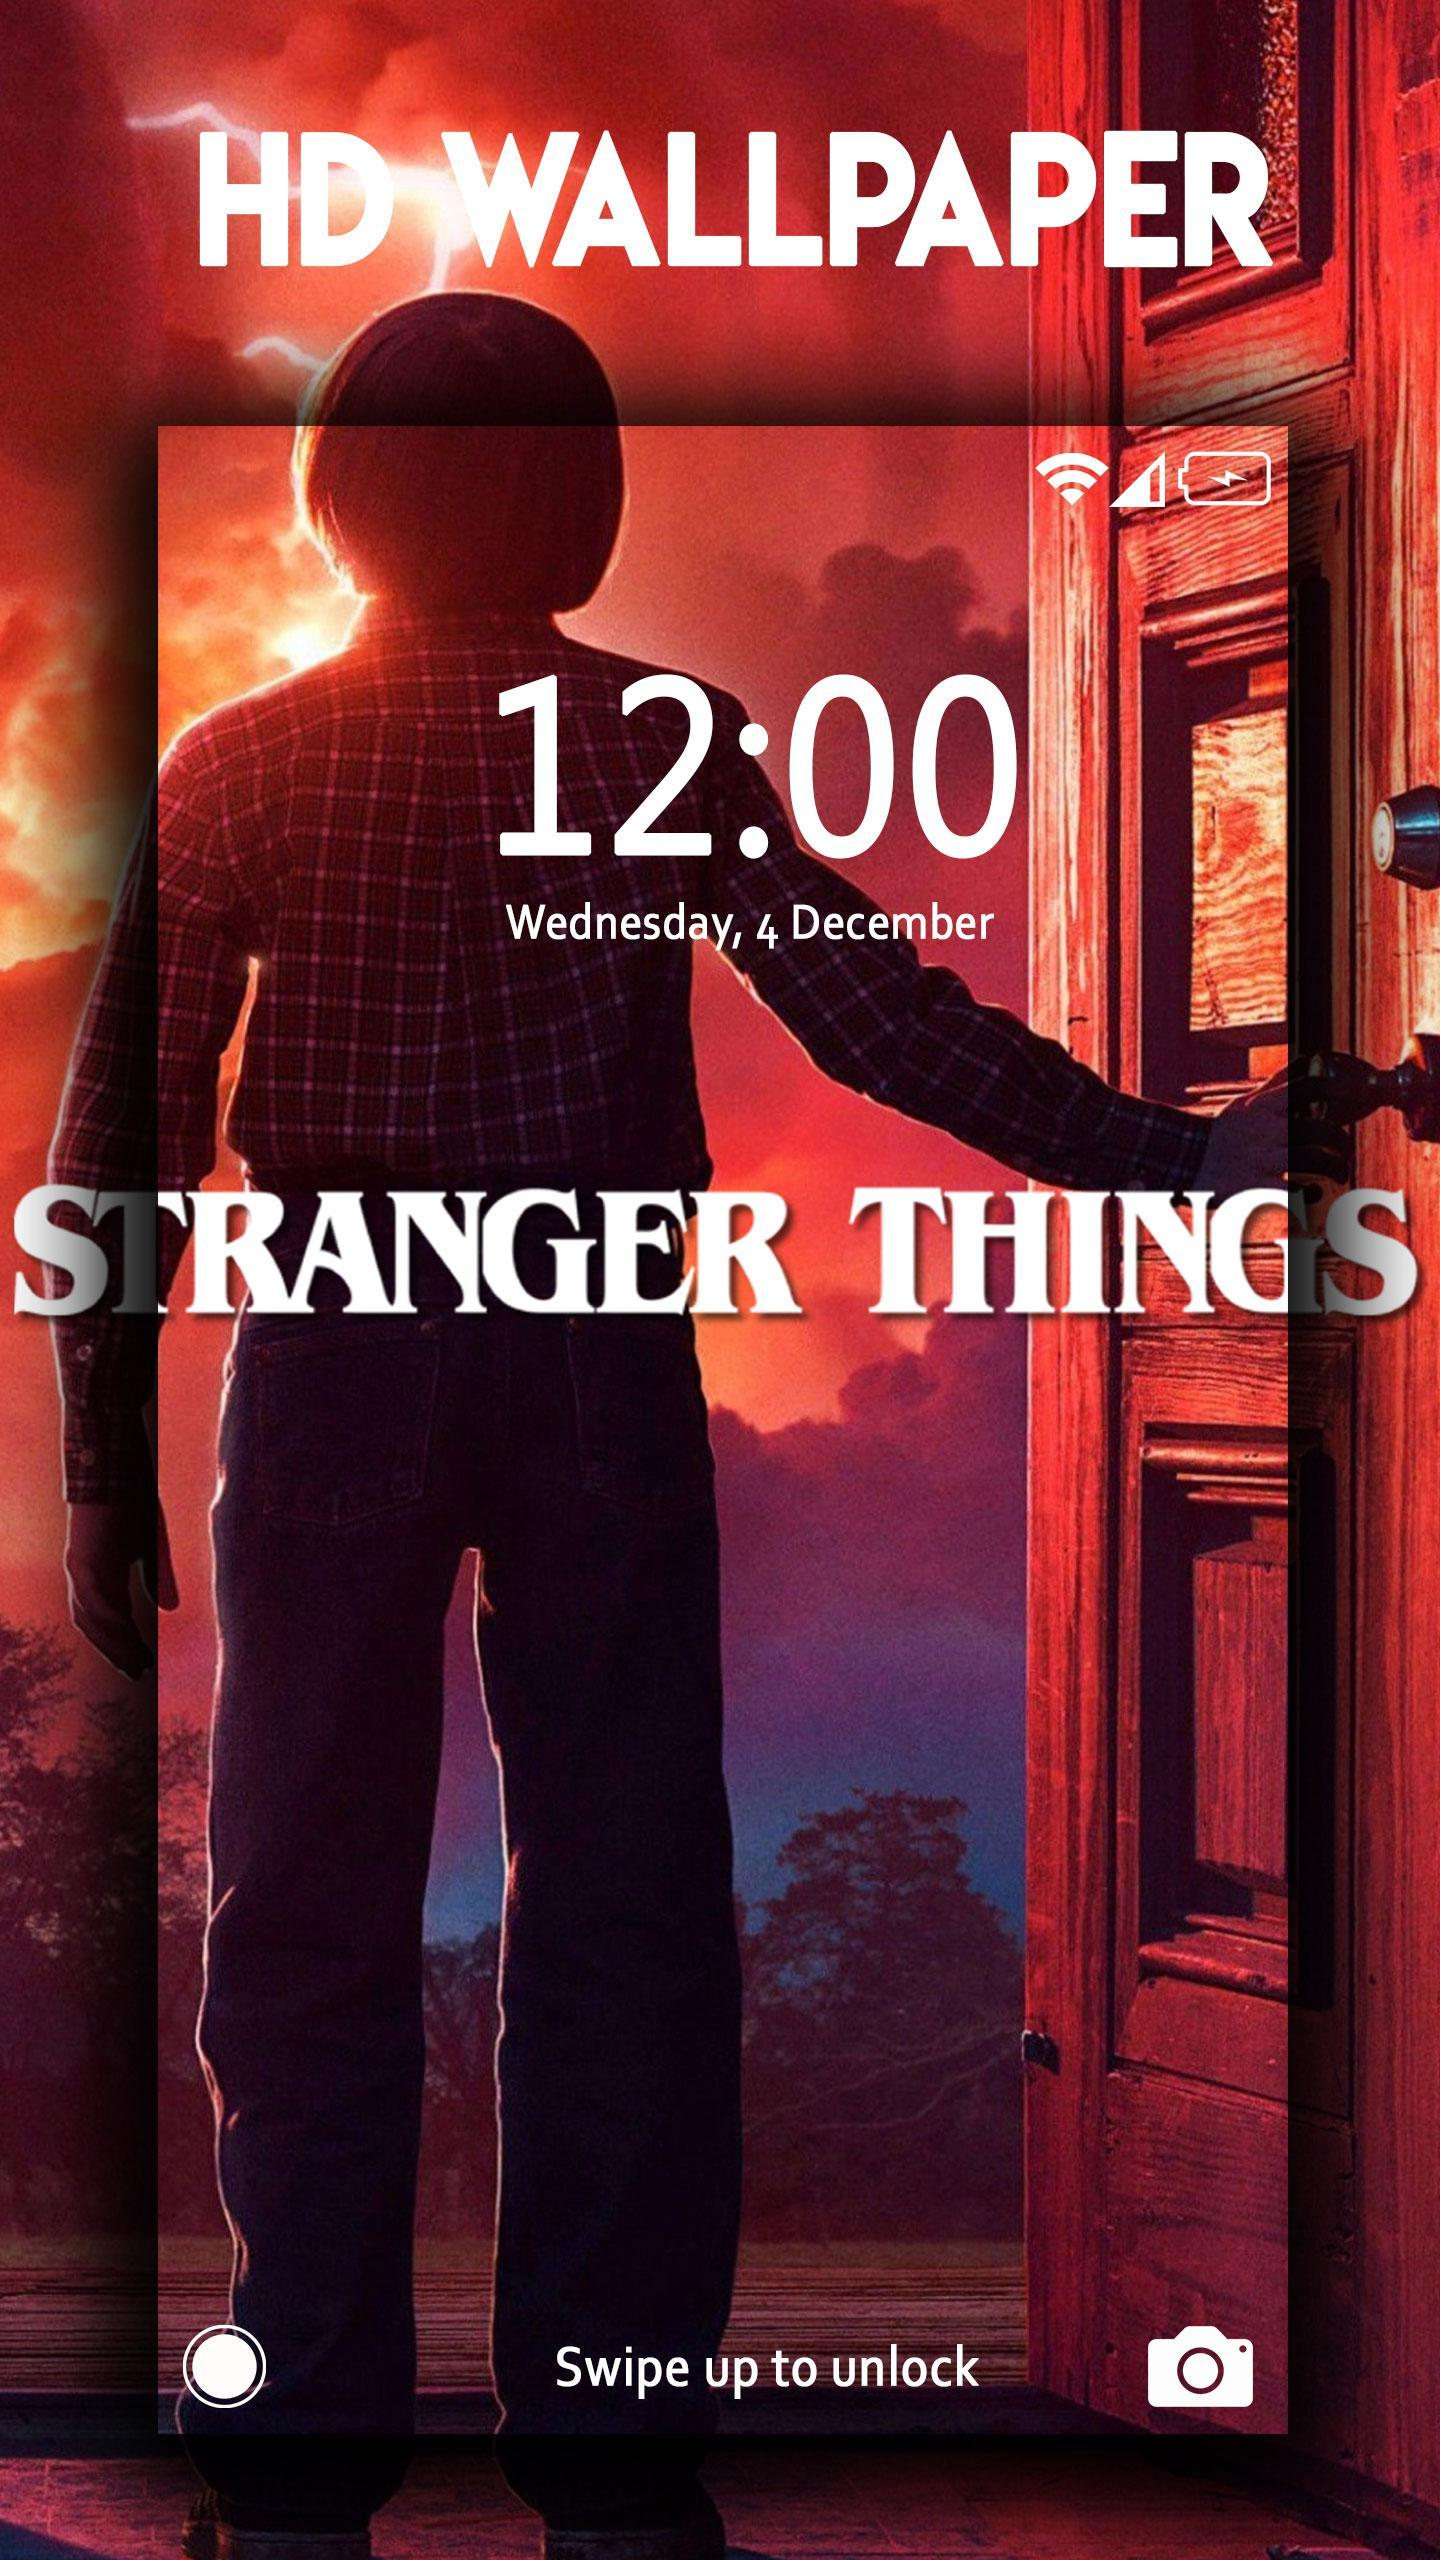 4K Stranger Things 3 4k Wallpapers for Android   APK Download 1440x2560